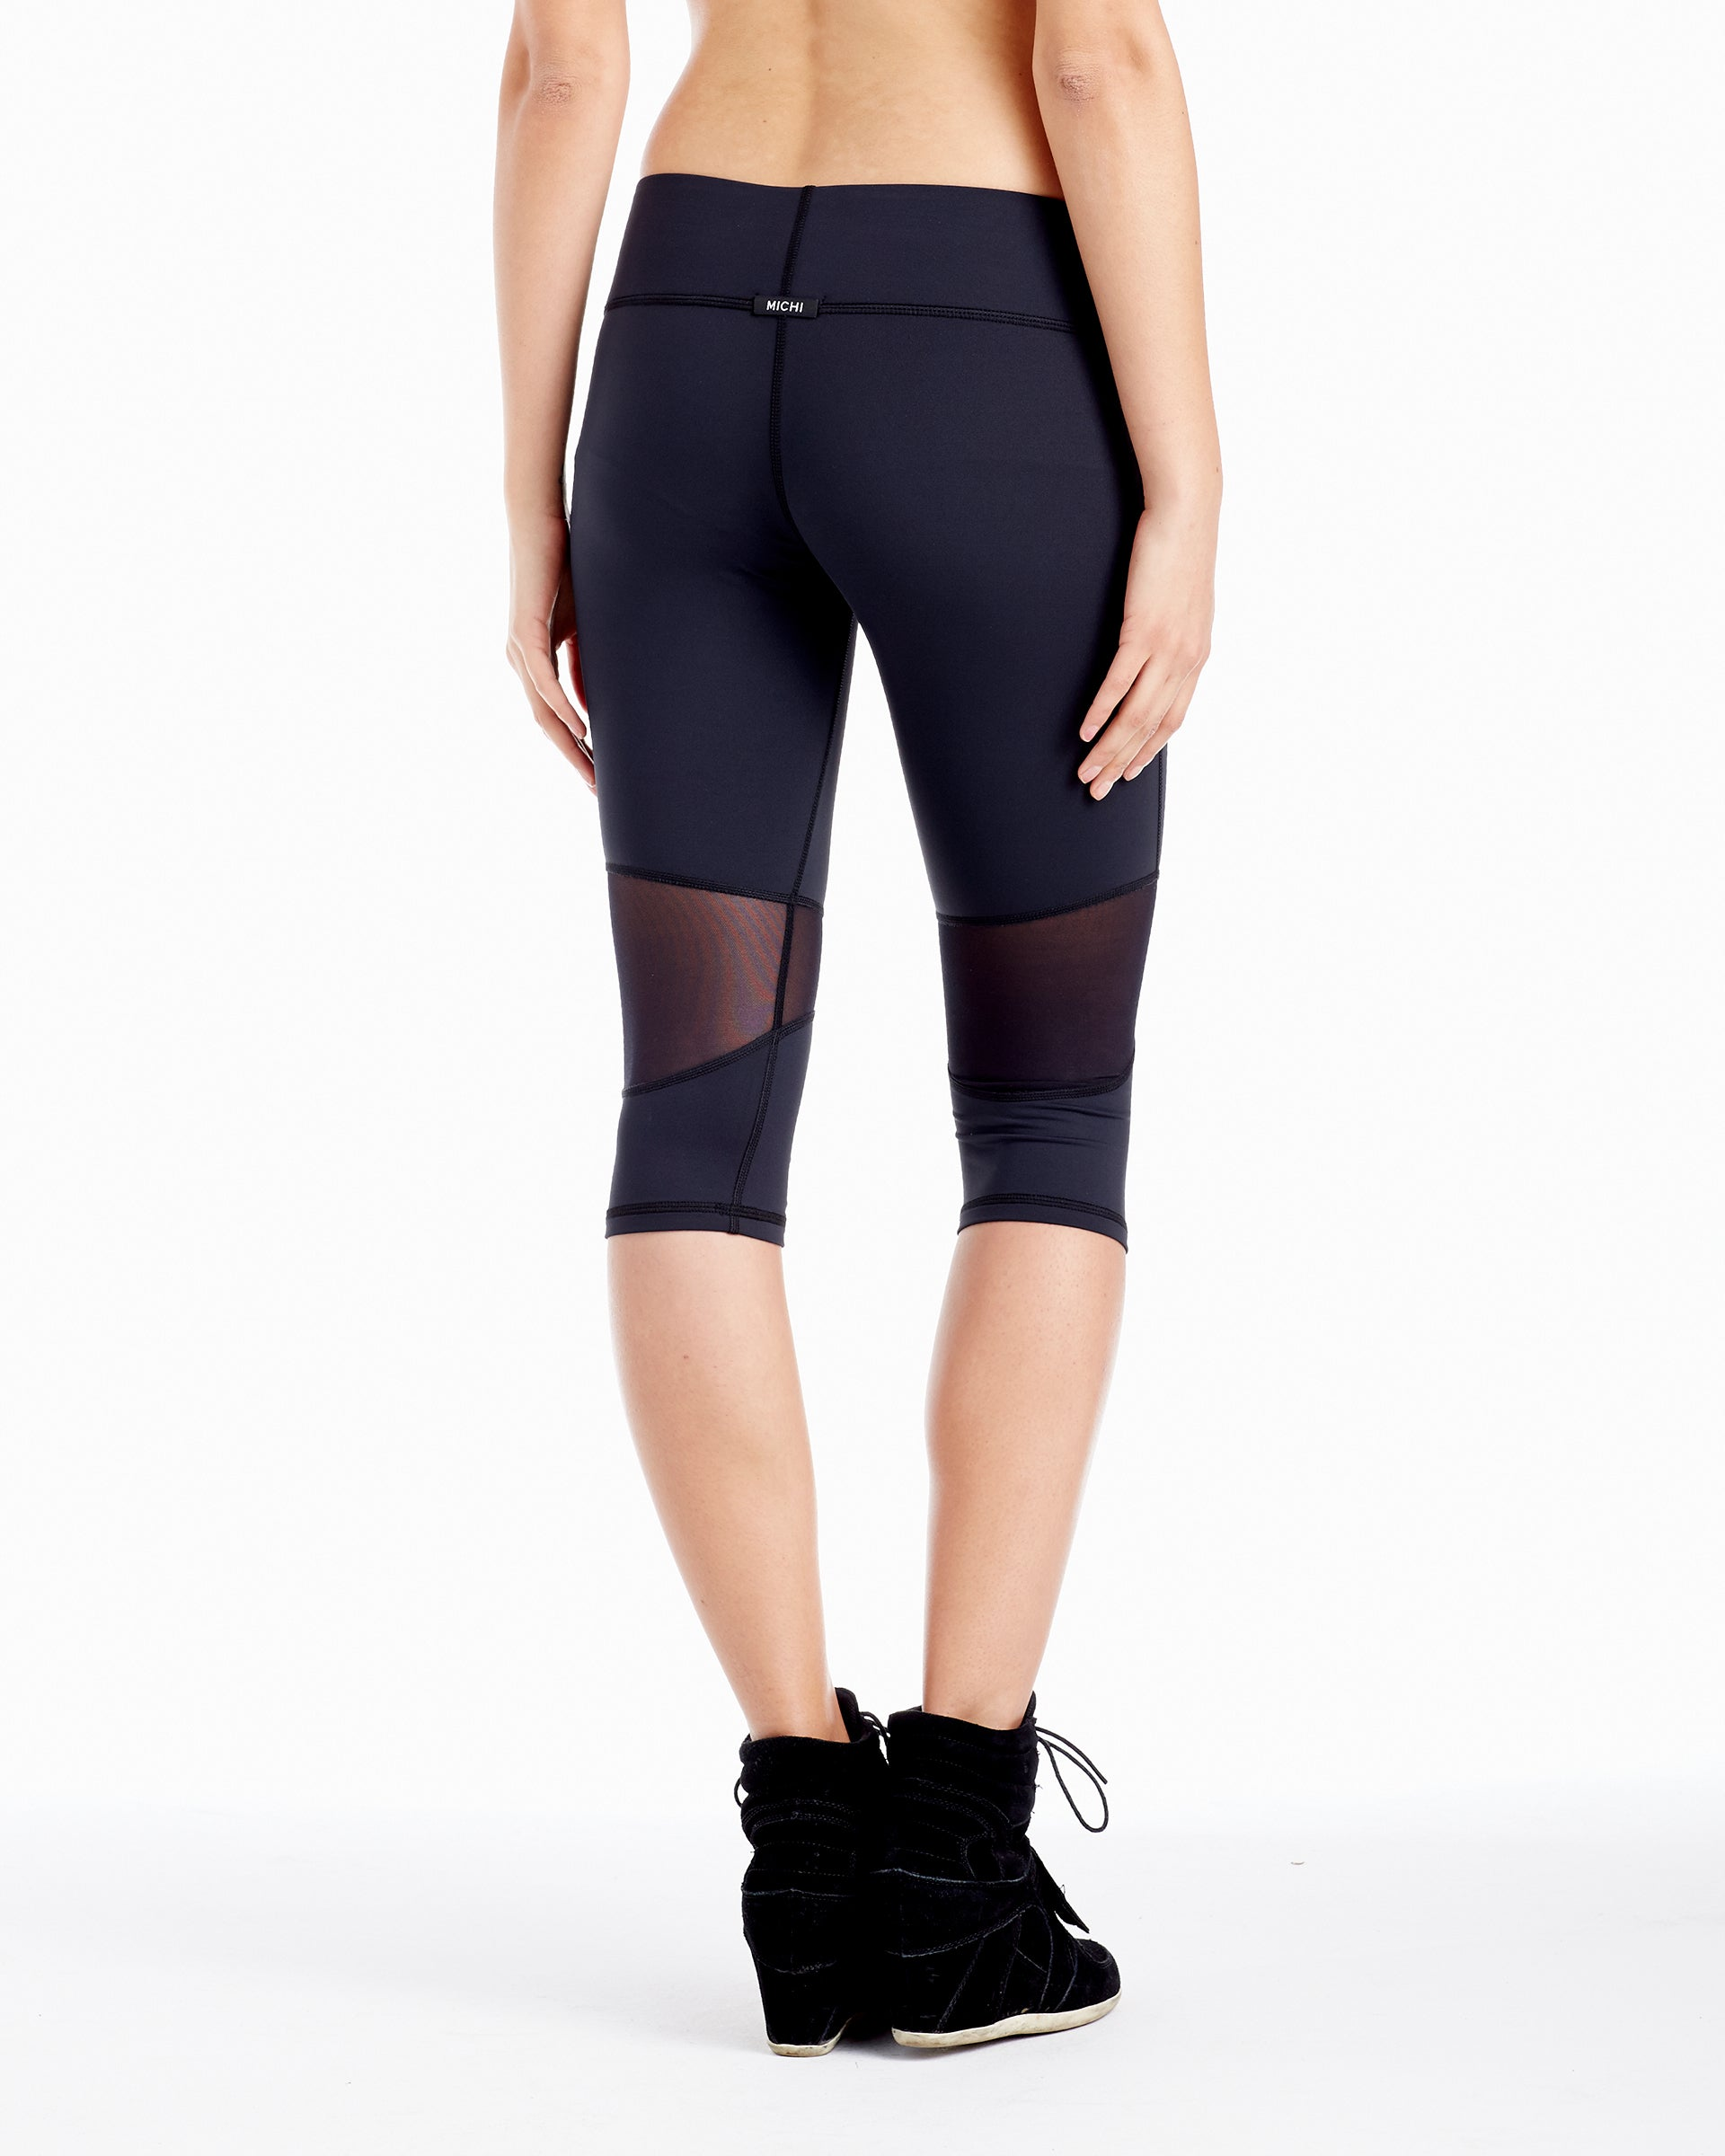 motorino-knee-crop-legging-black